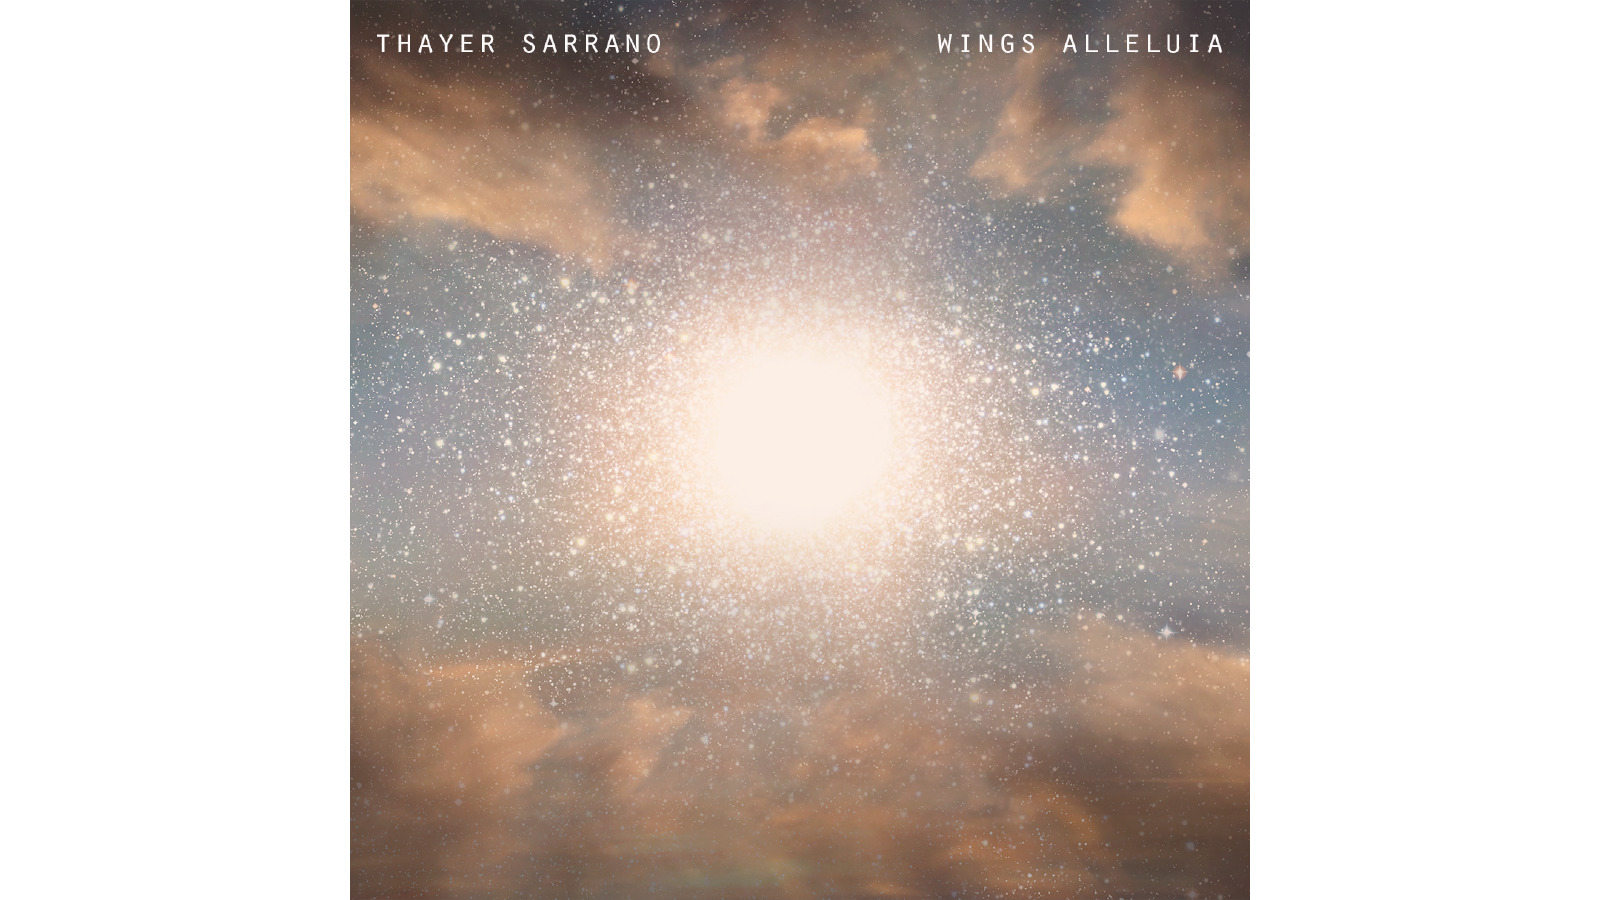 Thayer Sarrano. Wings Alleluia. Album Cover.